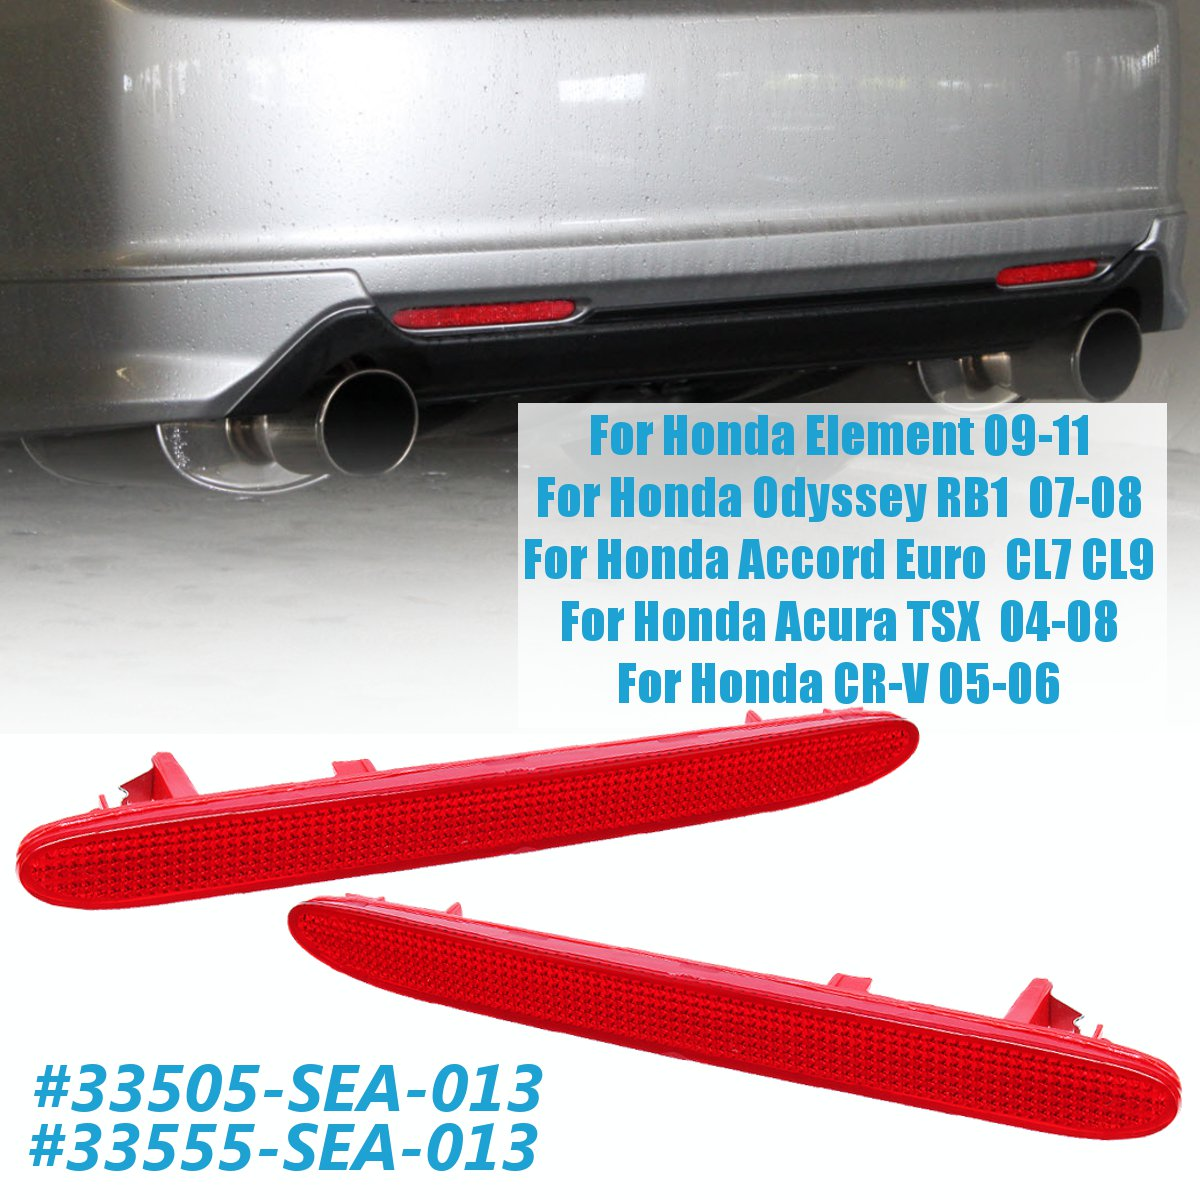 #33555-SEA-013, 33505-SEA-013 Left/Right Rear <font><b>Bumper</b></font> Reflector For Honda FOR <font><b>Acura</b></font> <font><b>TSX</b></font> for Accord for Odyssey for CR-V Element image